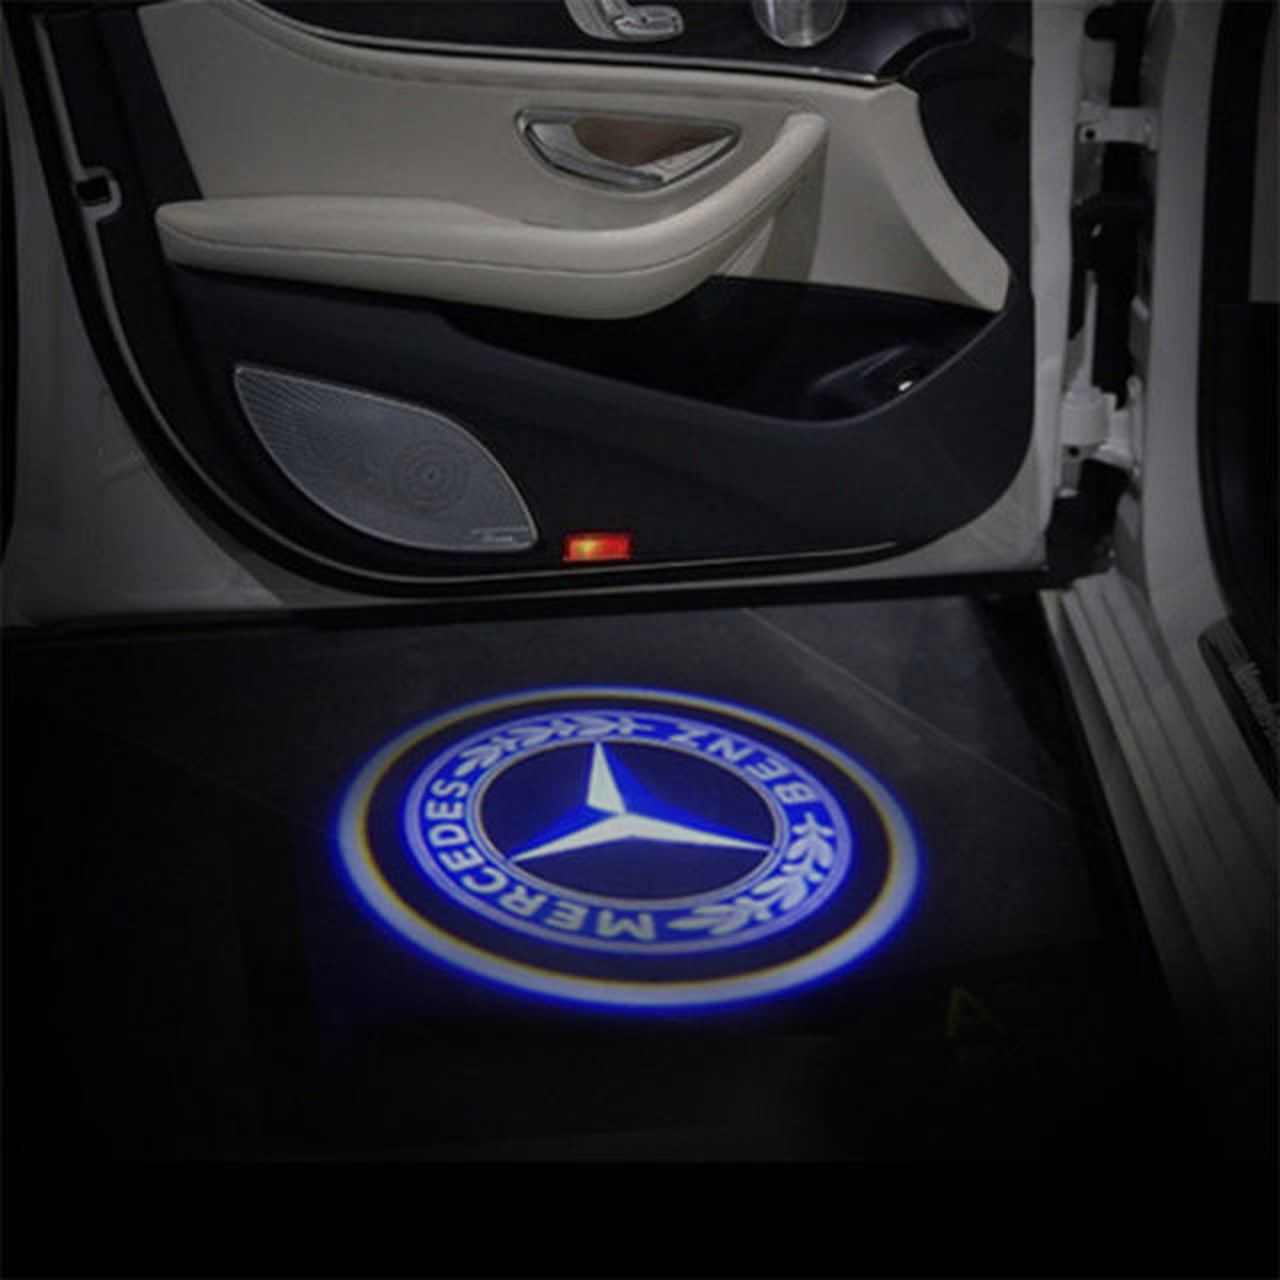 Mercedes Benz Logo Courtesy Shadow Car Door LED Lights.